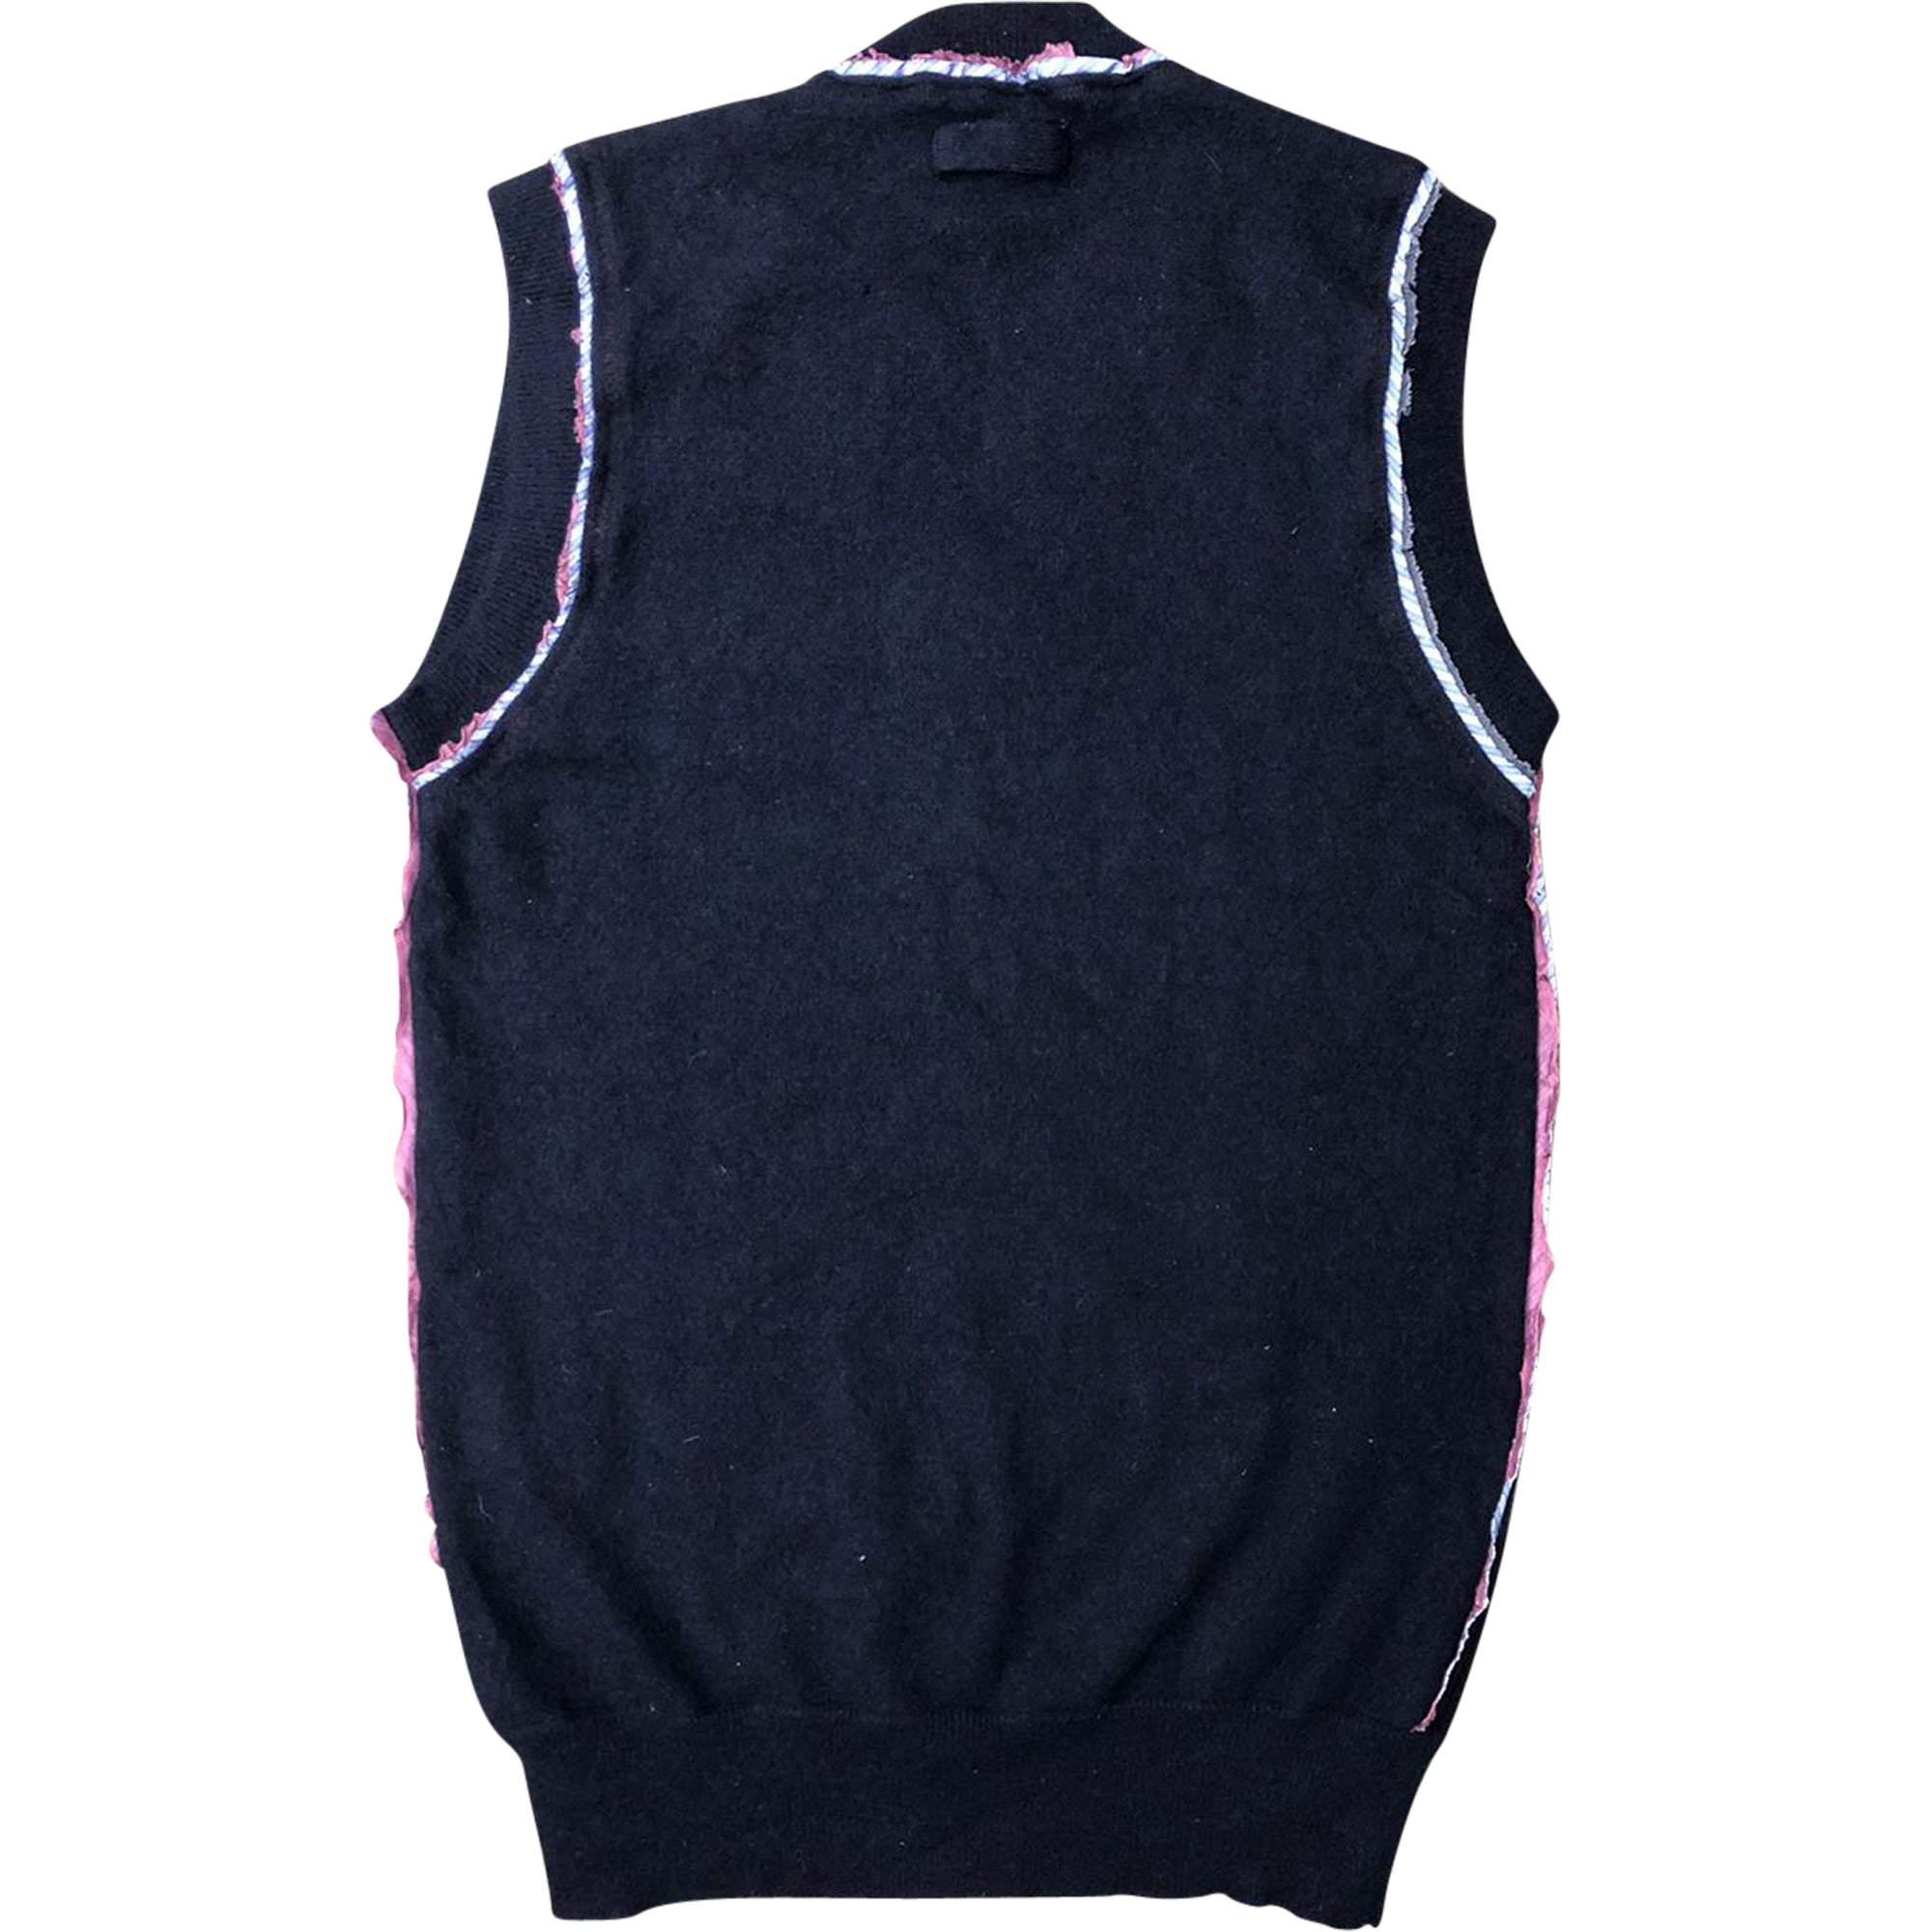 Dolce and Gabbana Exposed Seam Cashmere Vest (Navy) UK 6-8